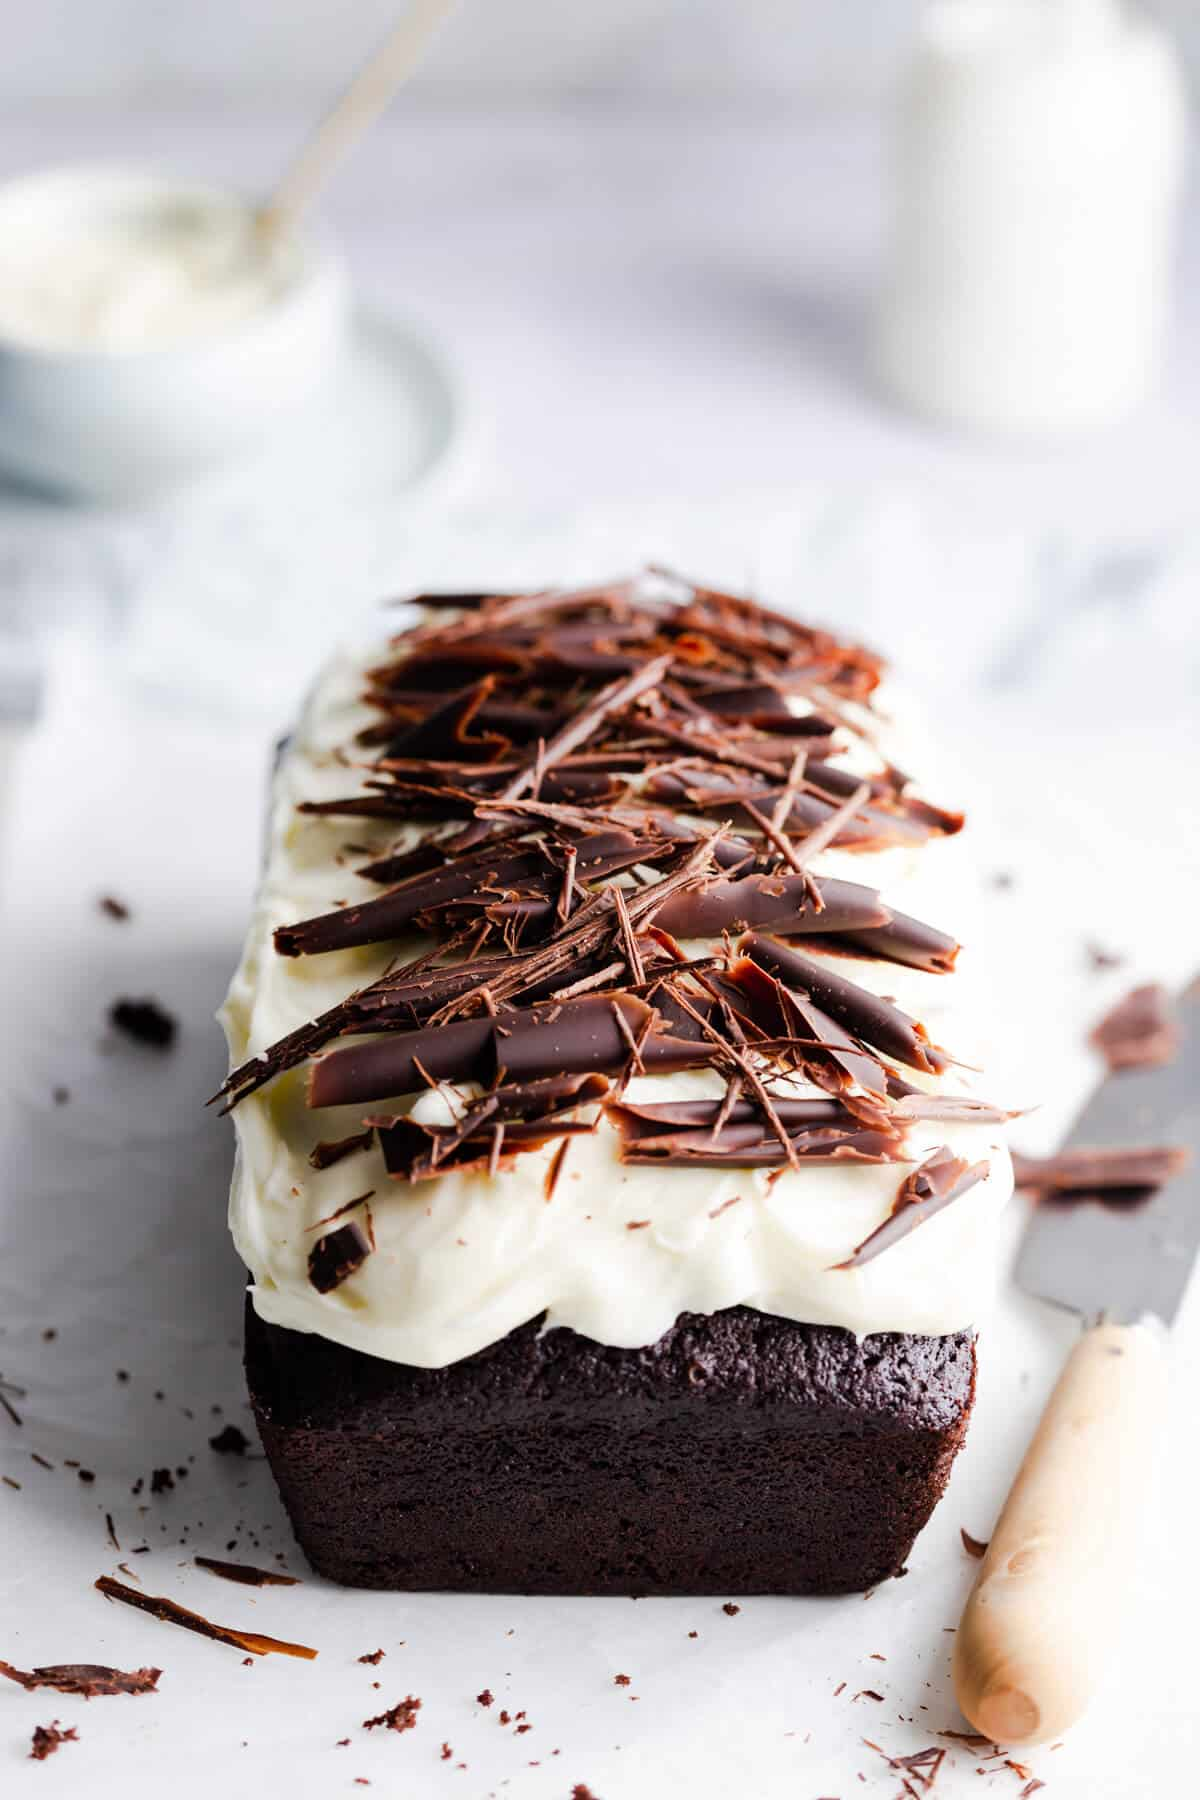 45 degree angle photo of chocolate loaf cake with frosting and chocolate curls